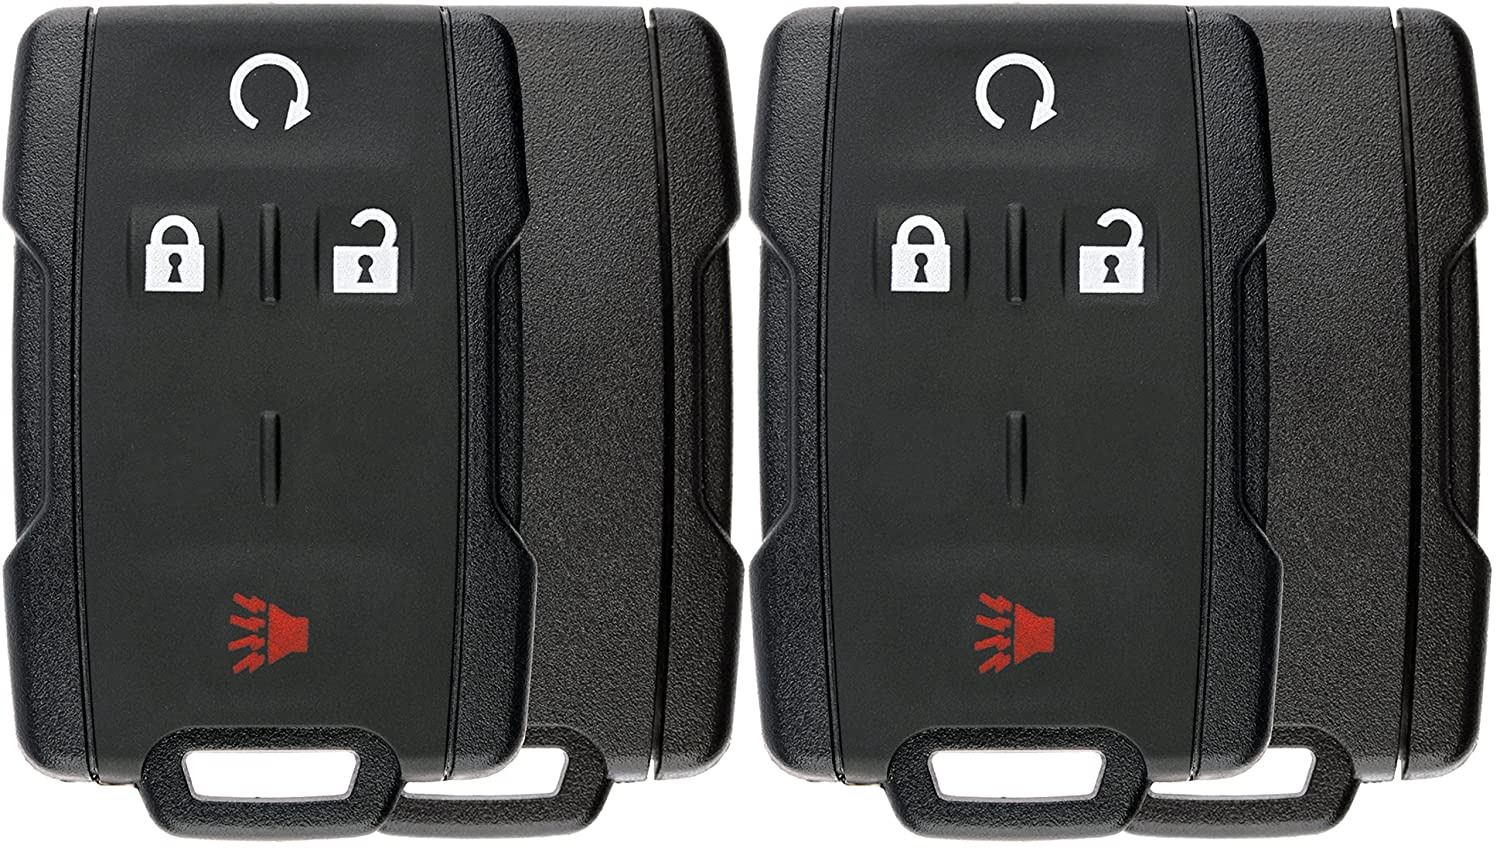 Pack of 2 KeylessOption Keyless Entry Remote Control Car Key Fob Case Shell Button Pad Outer Cover for M3N-32337100